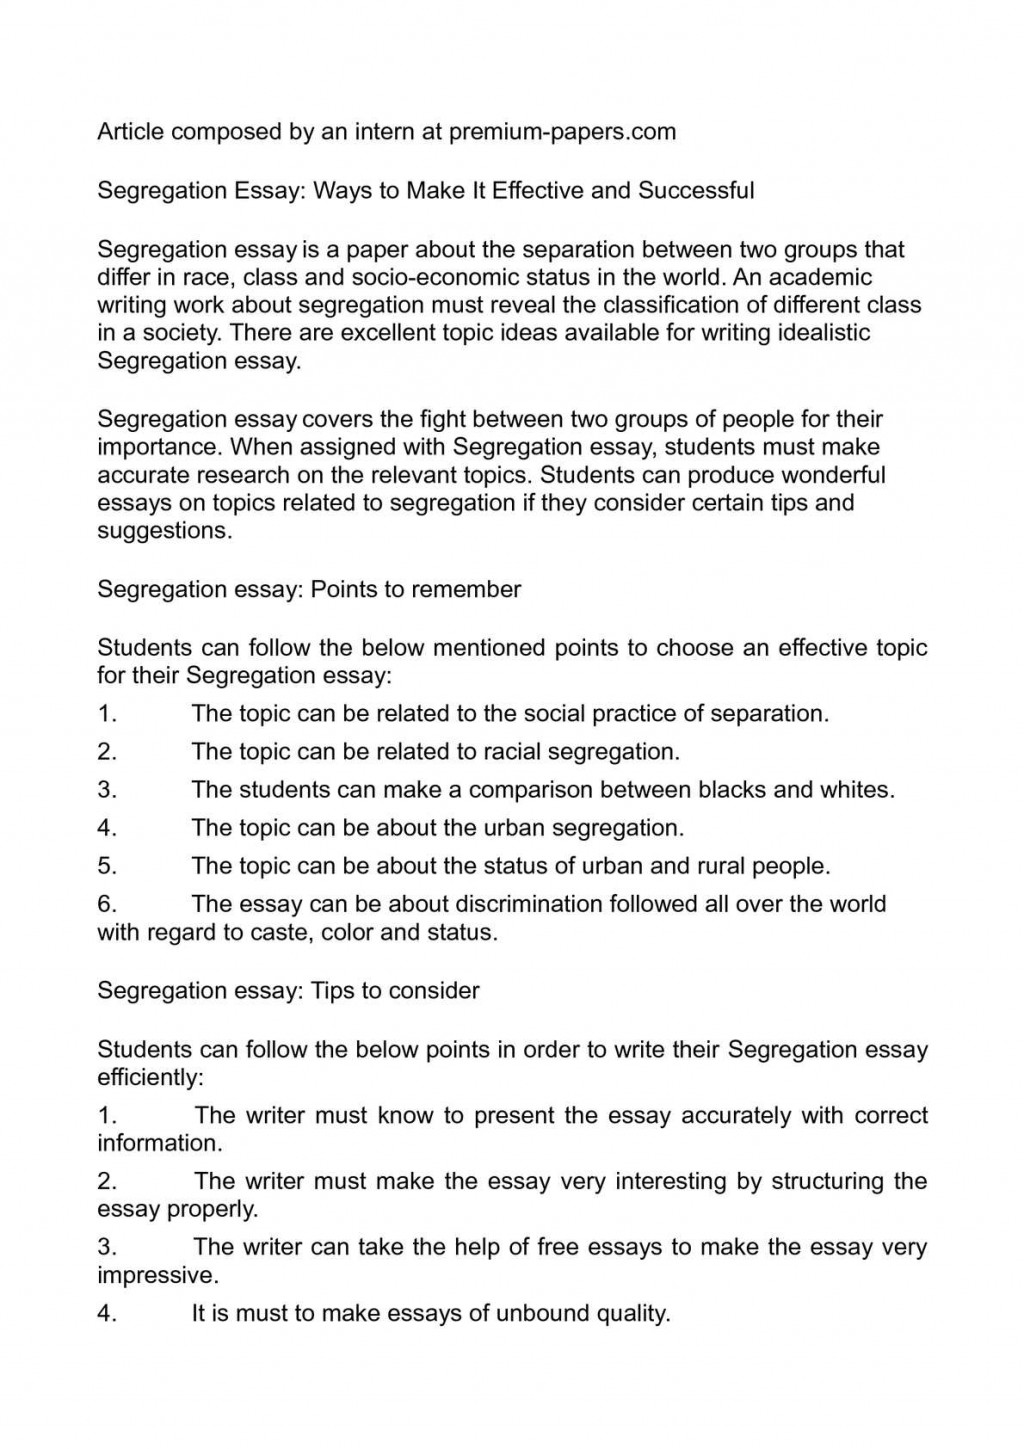 001 Essay Example Segregation Unusual Gender Segregated Schools Occupational On Importance Of Waste At Source Large